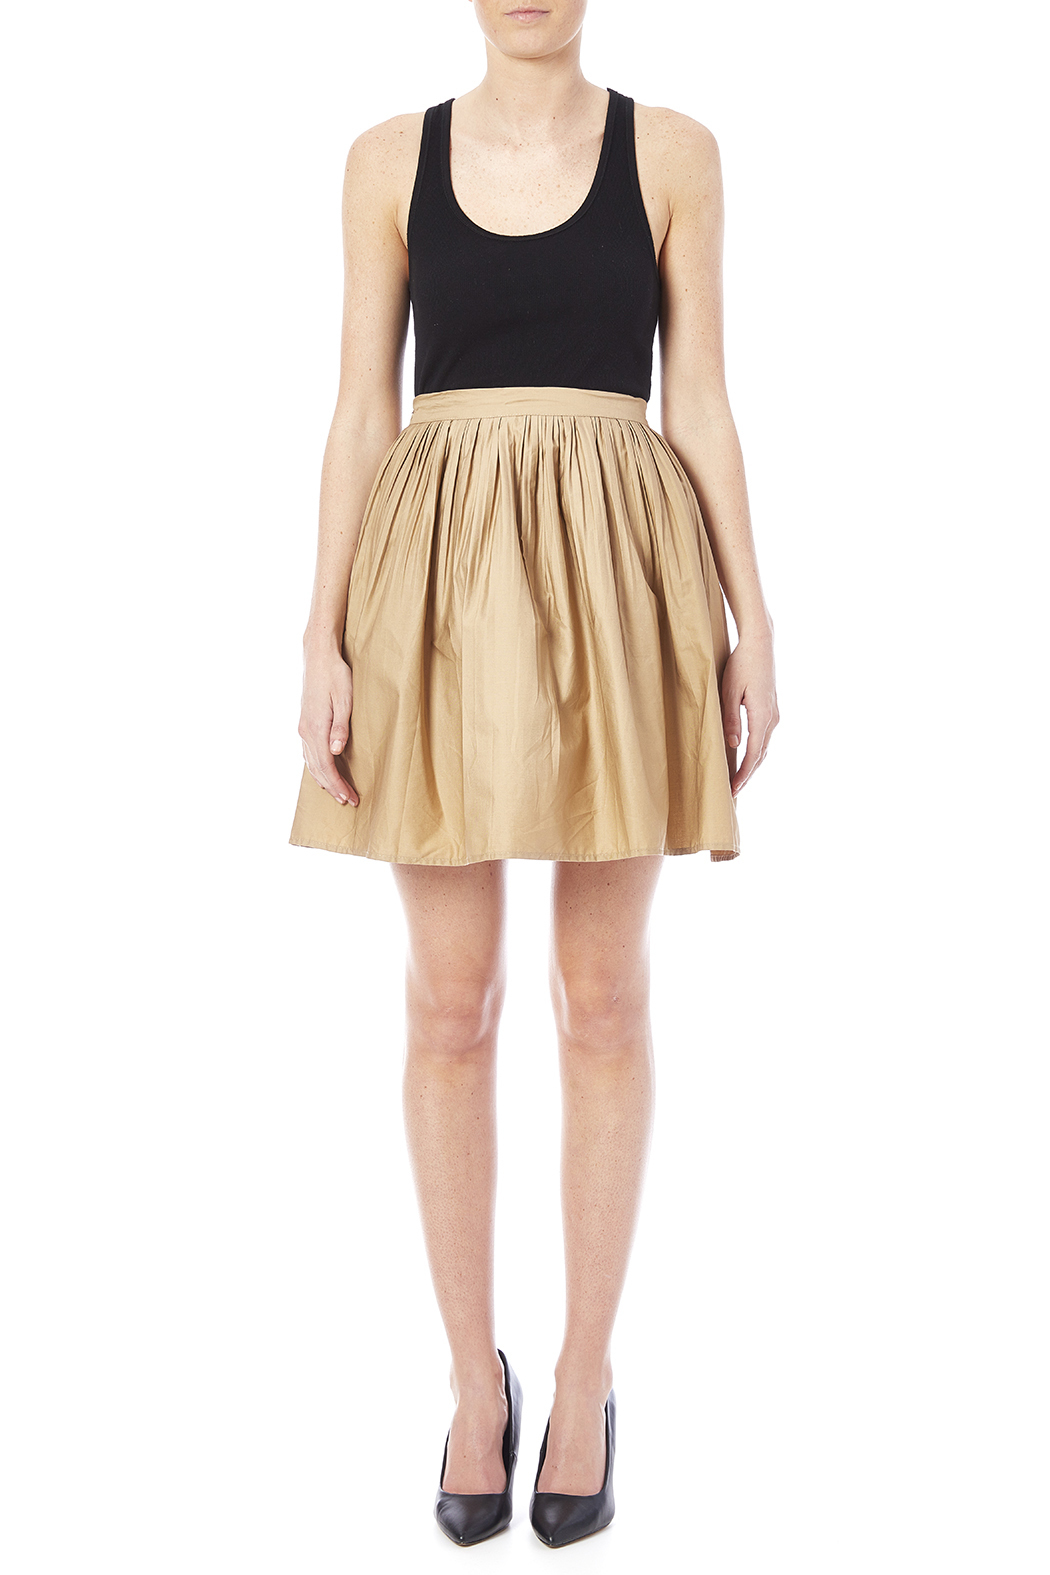 NU New York Beige Skirt - Front Full Image